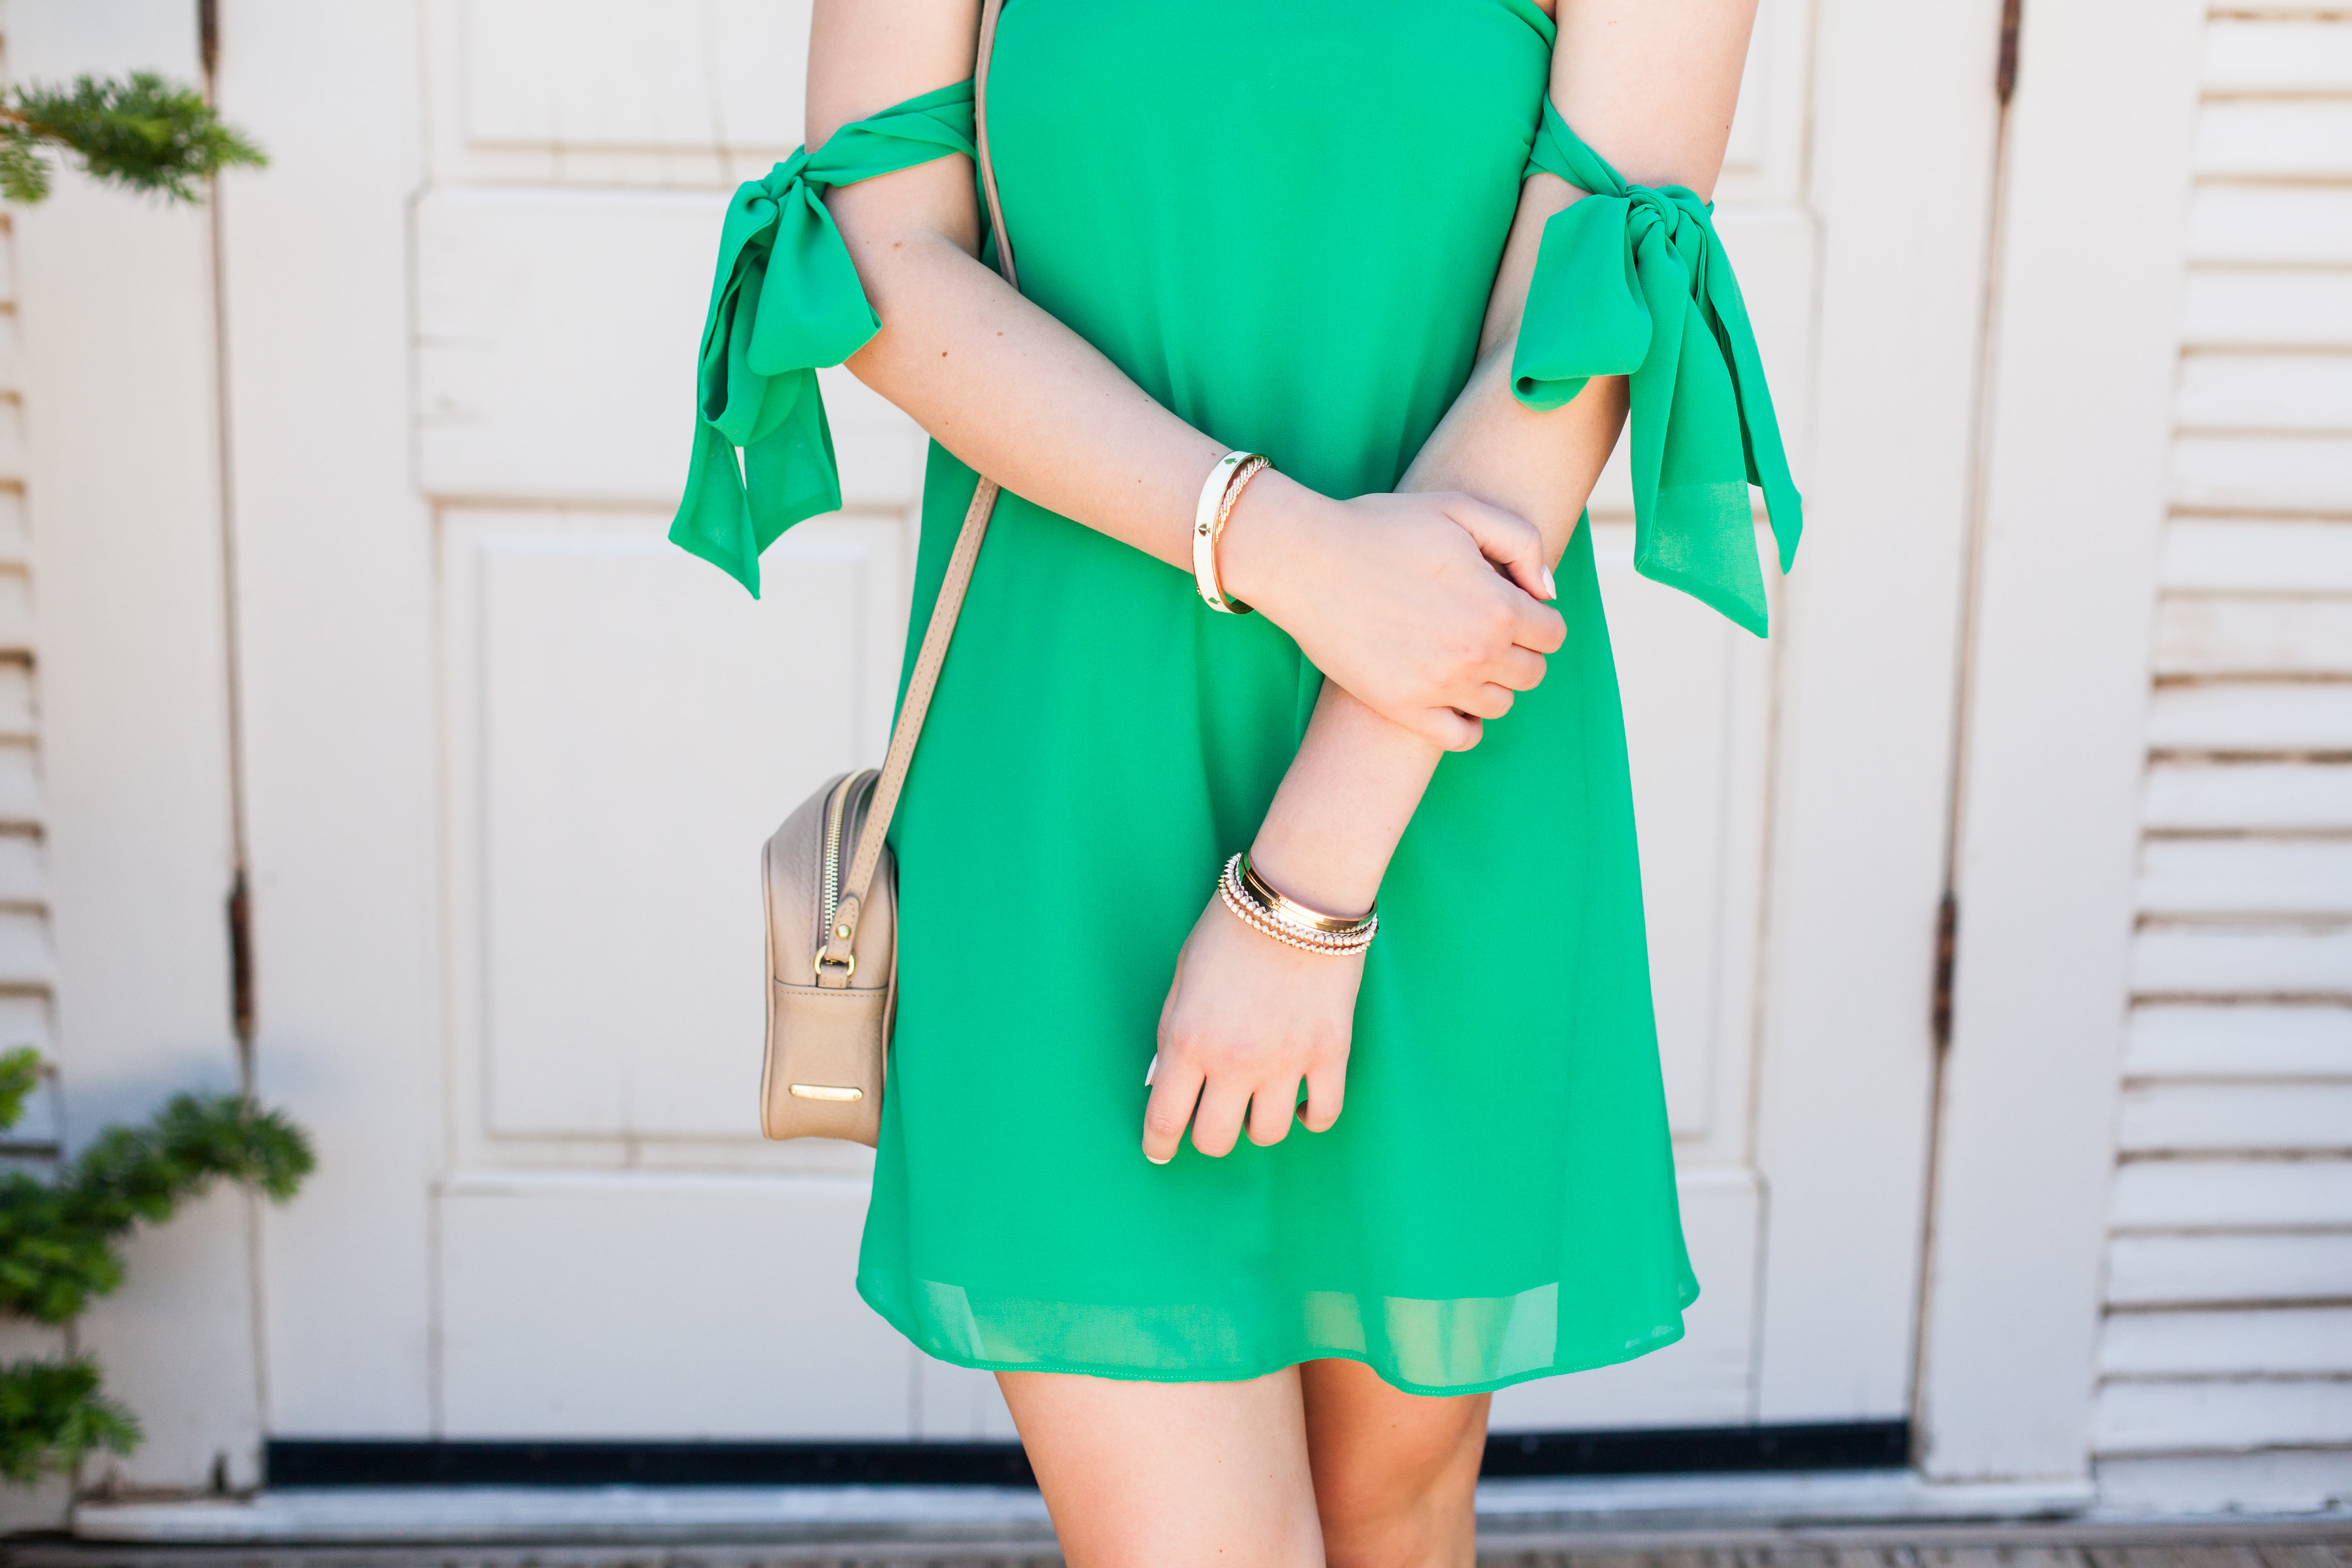 Girl in the Green Dress | Fashion and lifestyle blogger | Hot color for Summer | Asos | Audrey Madison Stowe Blog - Green Cold Shoulder Dress styled by popular Texas fashion blogger, Audrey Madison Stowe